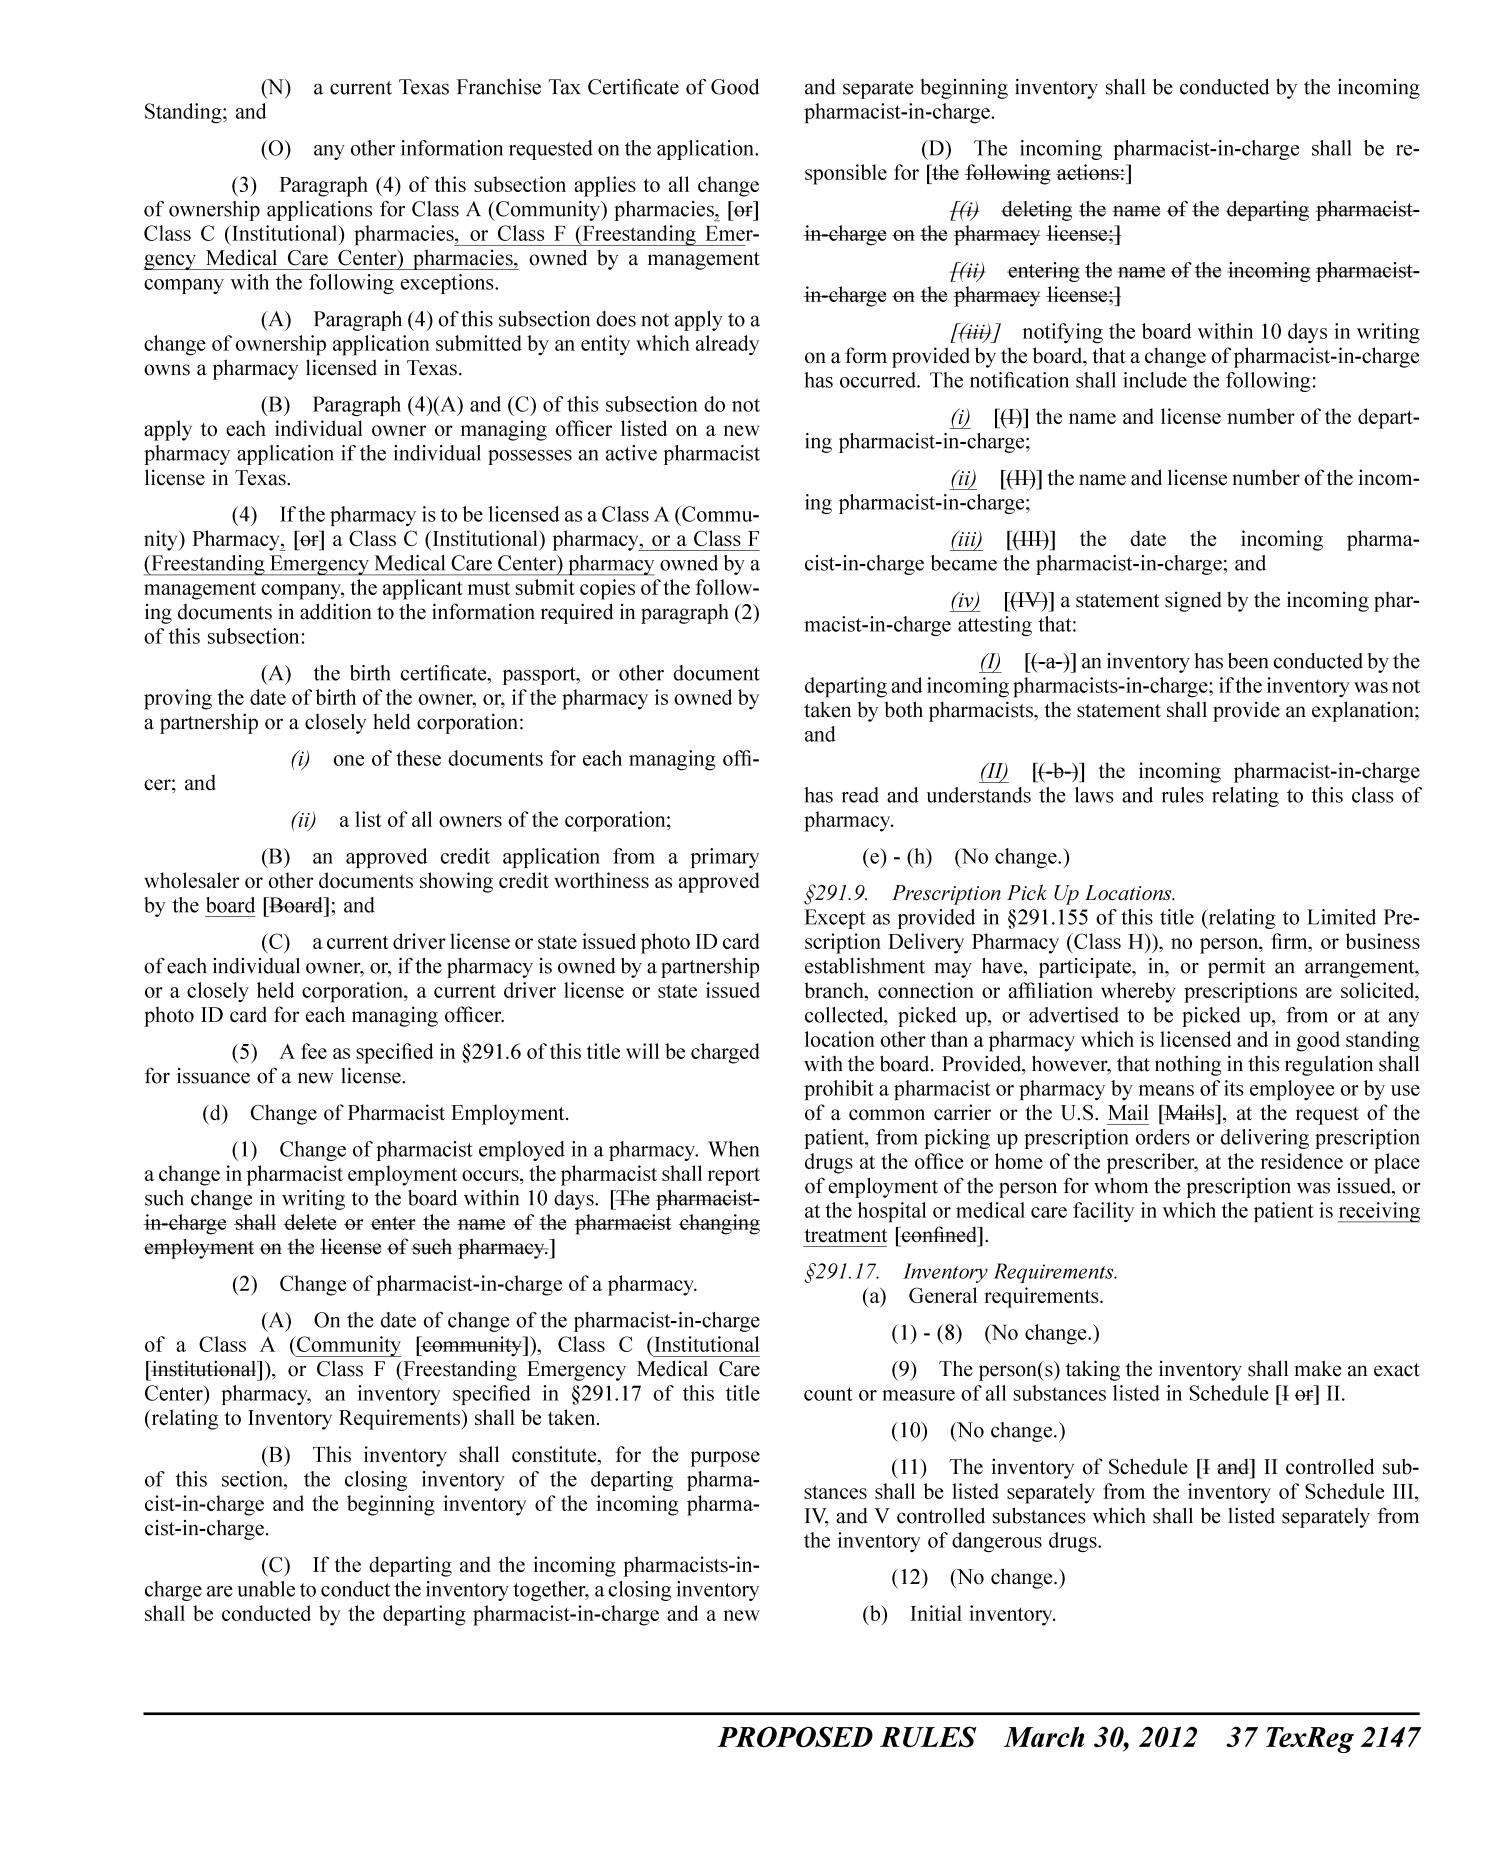 Texas Register, Volume 37, Number 13, Pages 2121-2278